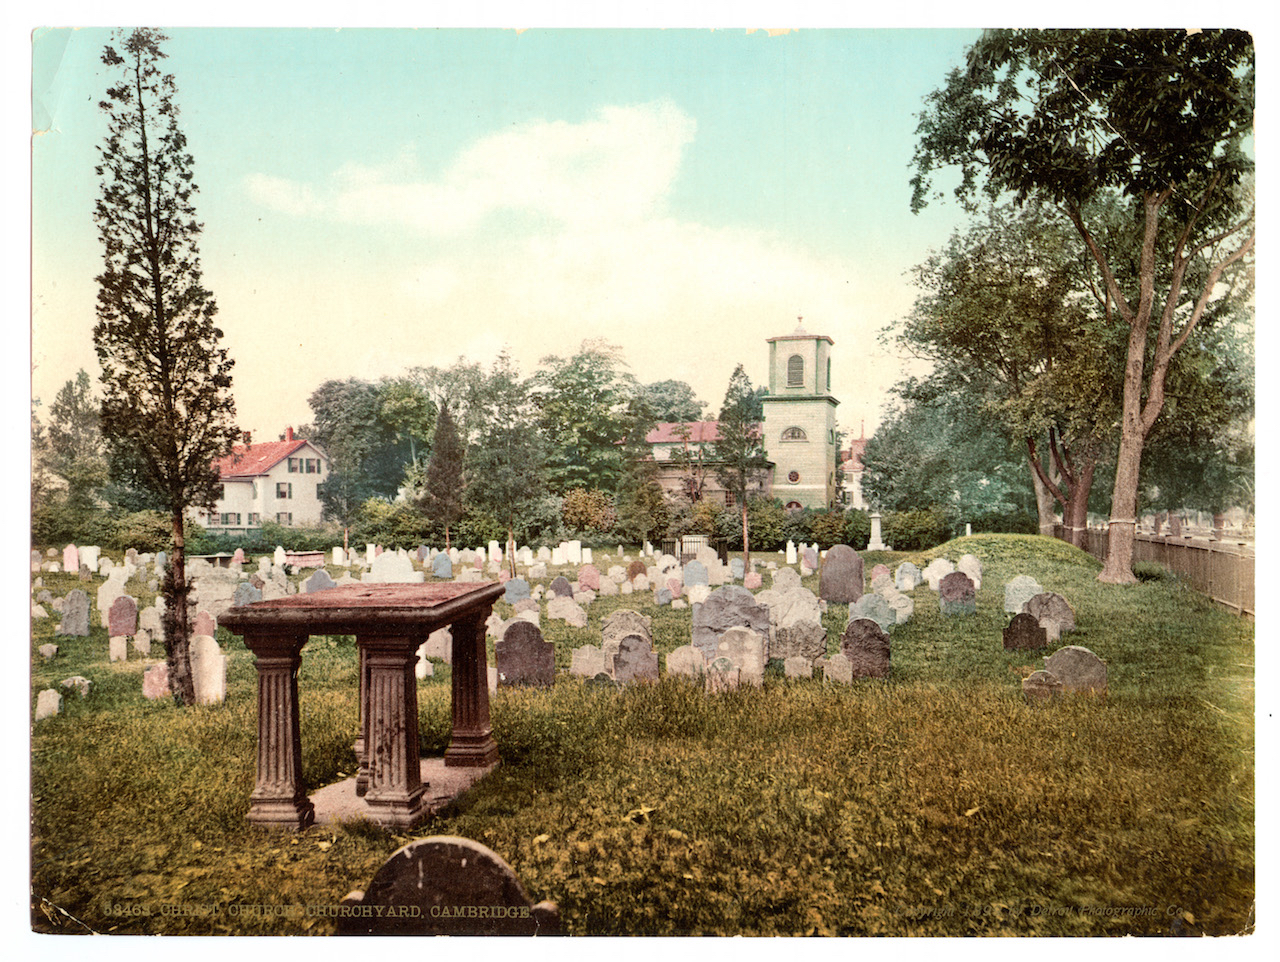 Christ Church, view from Old Burying Ground, 1905 postcard.